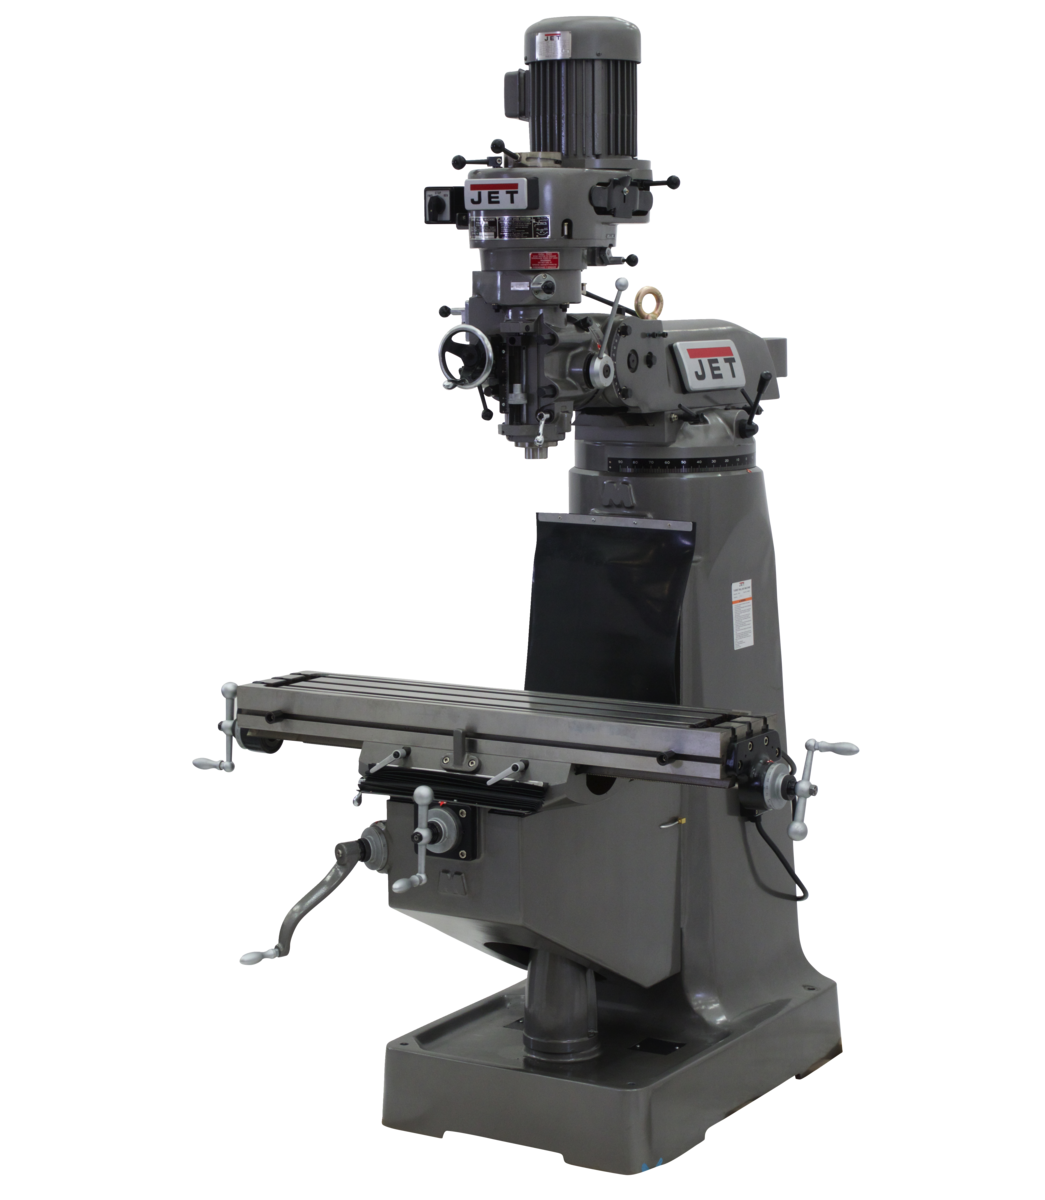 JTM-1 Mill With 3-Axis Newall DP500 DRO (Knee)